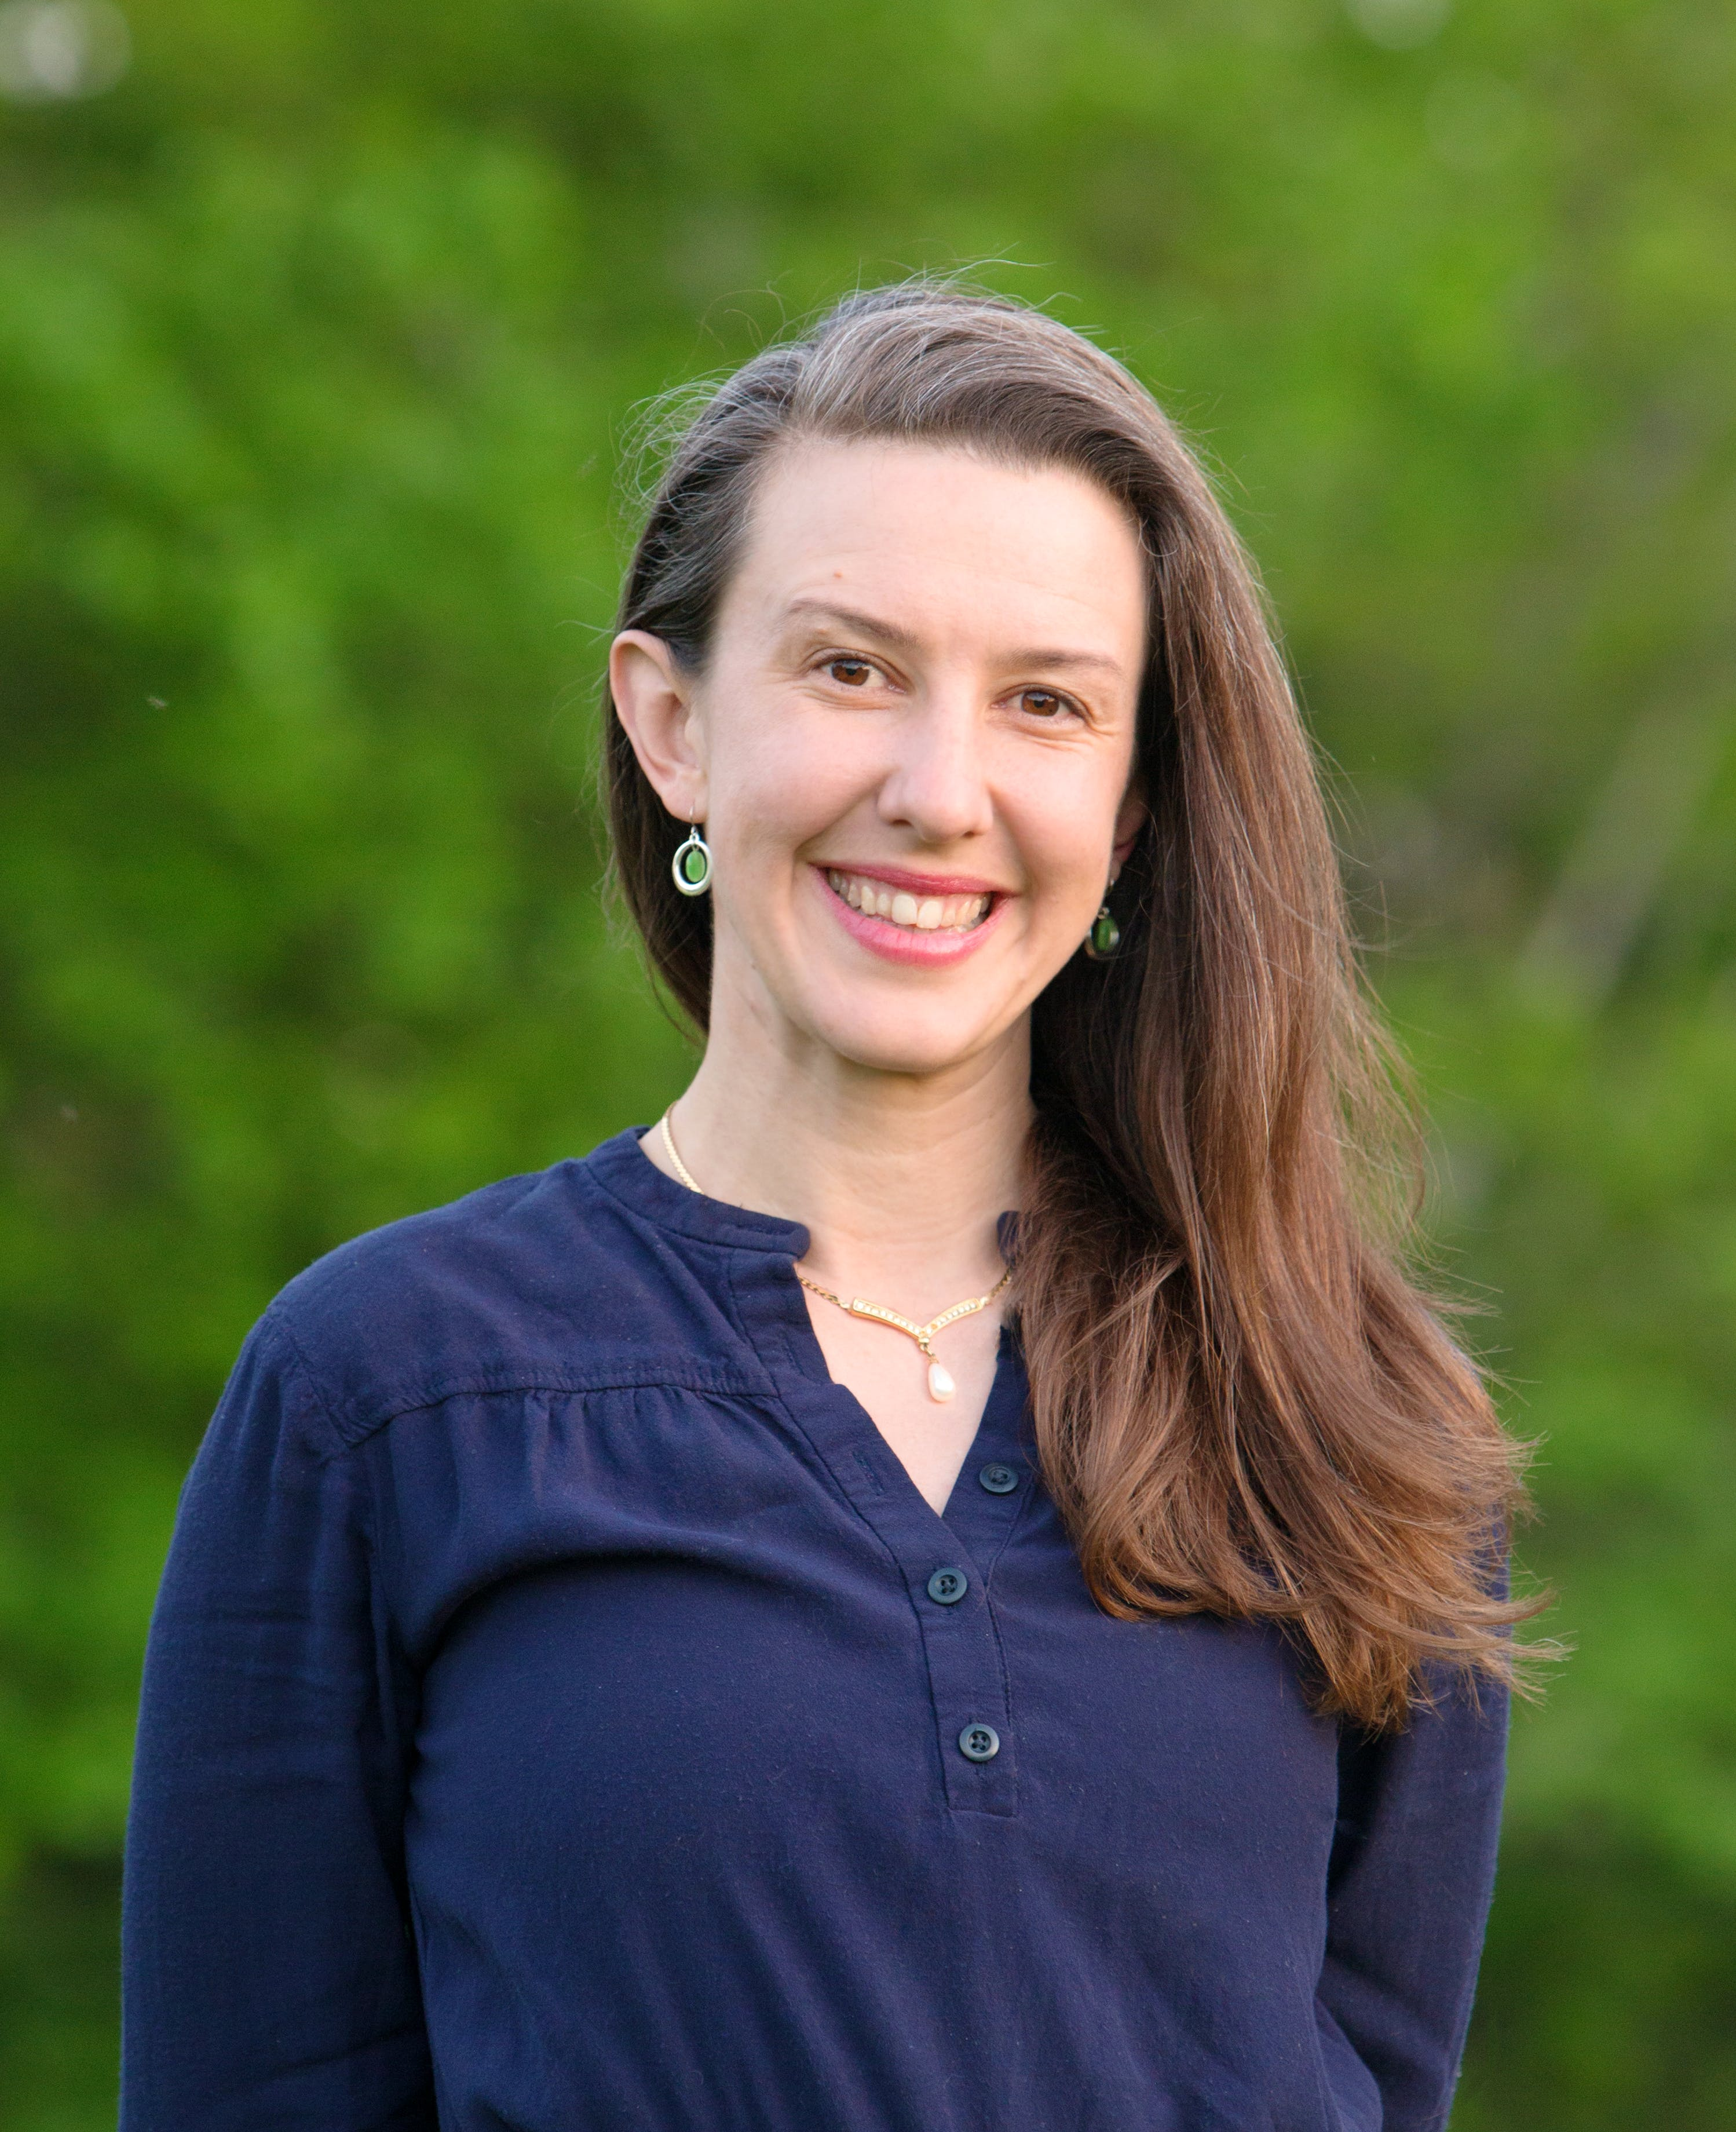 Anna Keenan announced she'll be the federal Green Party candidate in Malpeque for the next election.